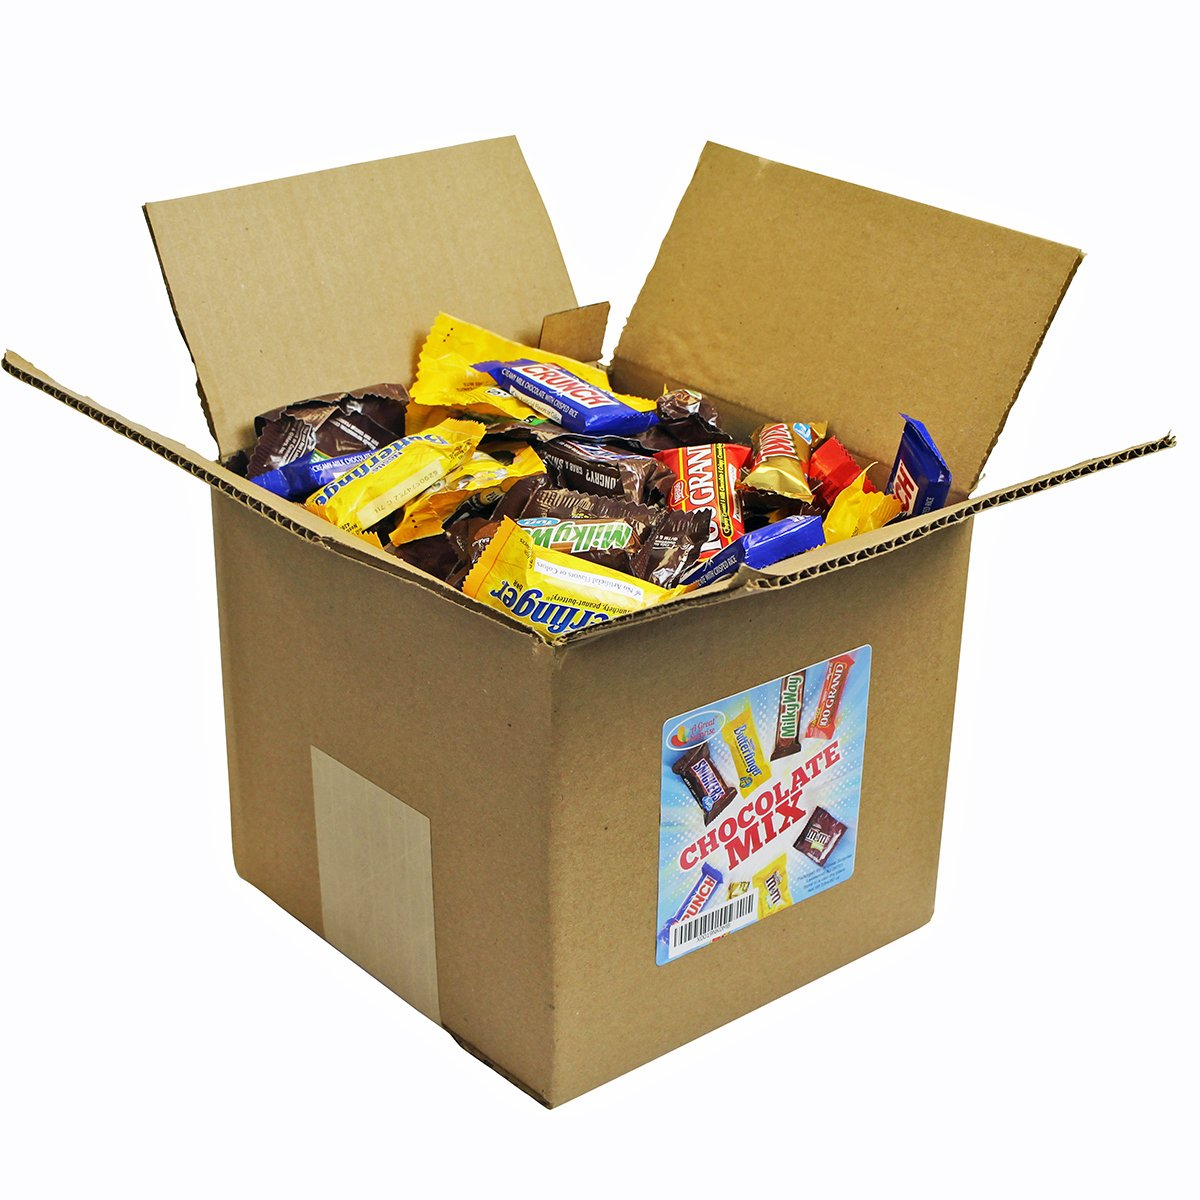 Chocolate Variety Pack - Fun Size Candy - All Your Favorite Chocolate Bars Including M&M, Snickers, Twix and More In 8x8x8 Bulk Box, 7.3 Lbs by A Great Surprise (Image #2)